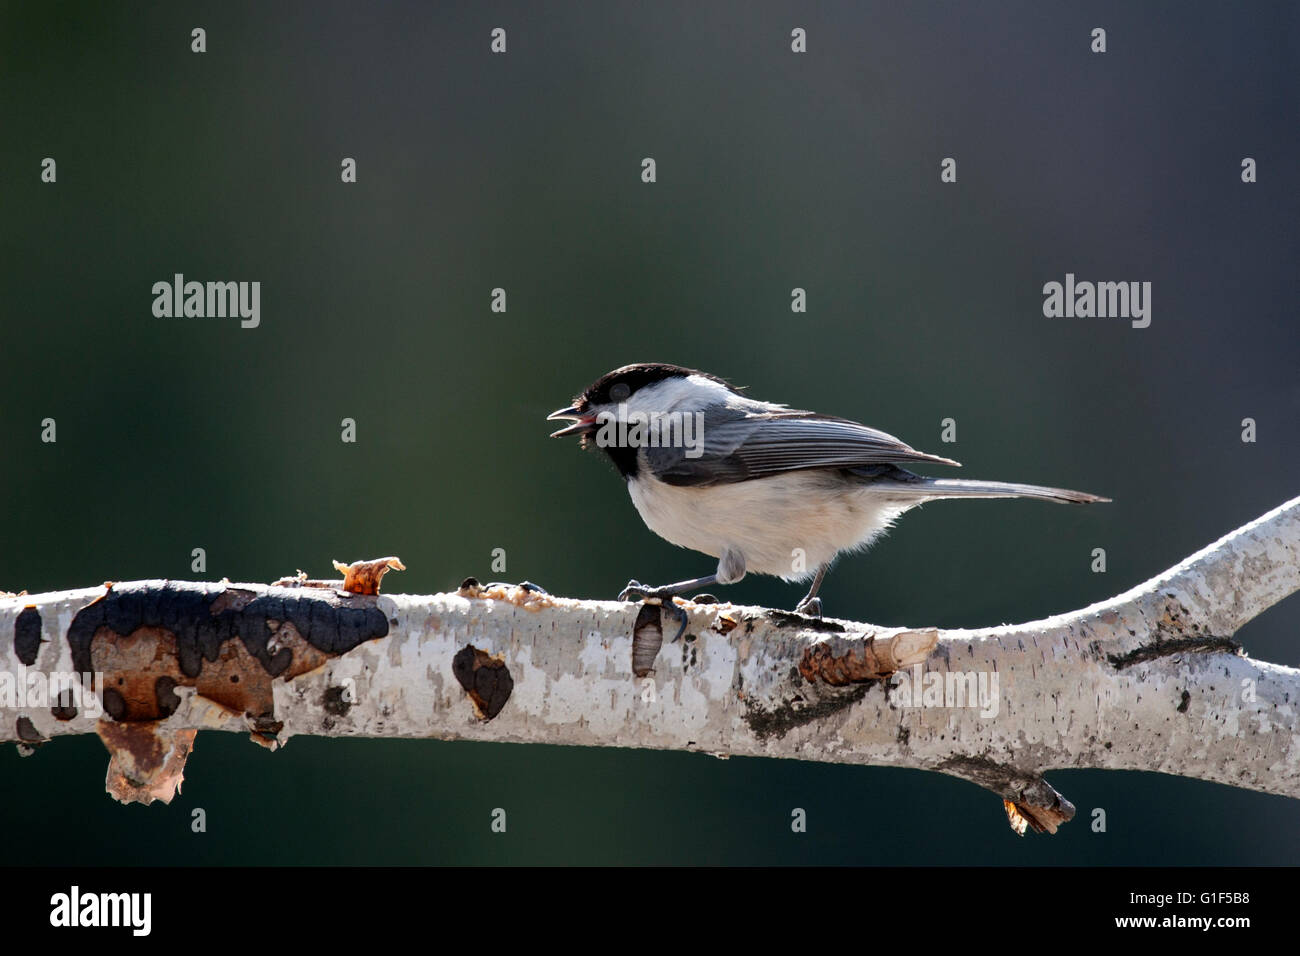 Black capped chickadee chirps while perched on birch branch - Stock Image